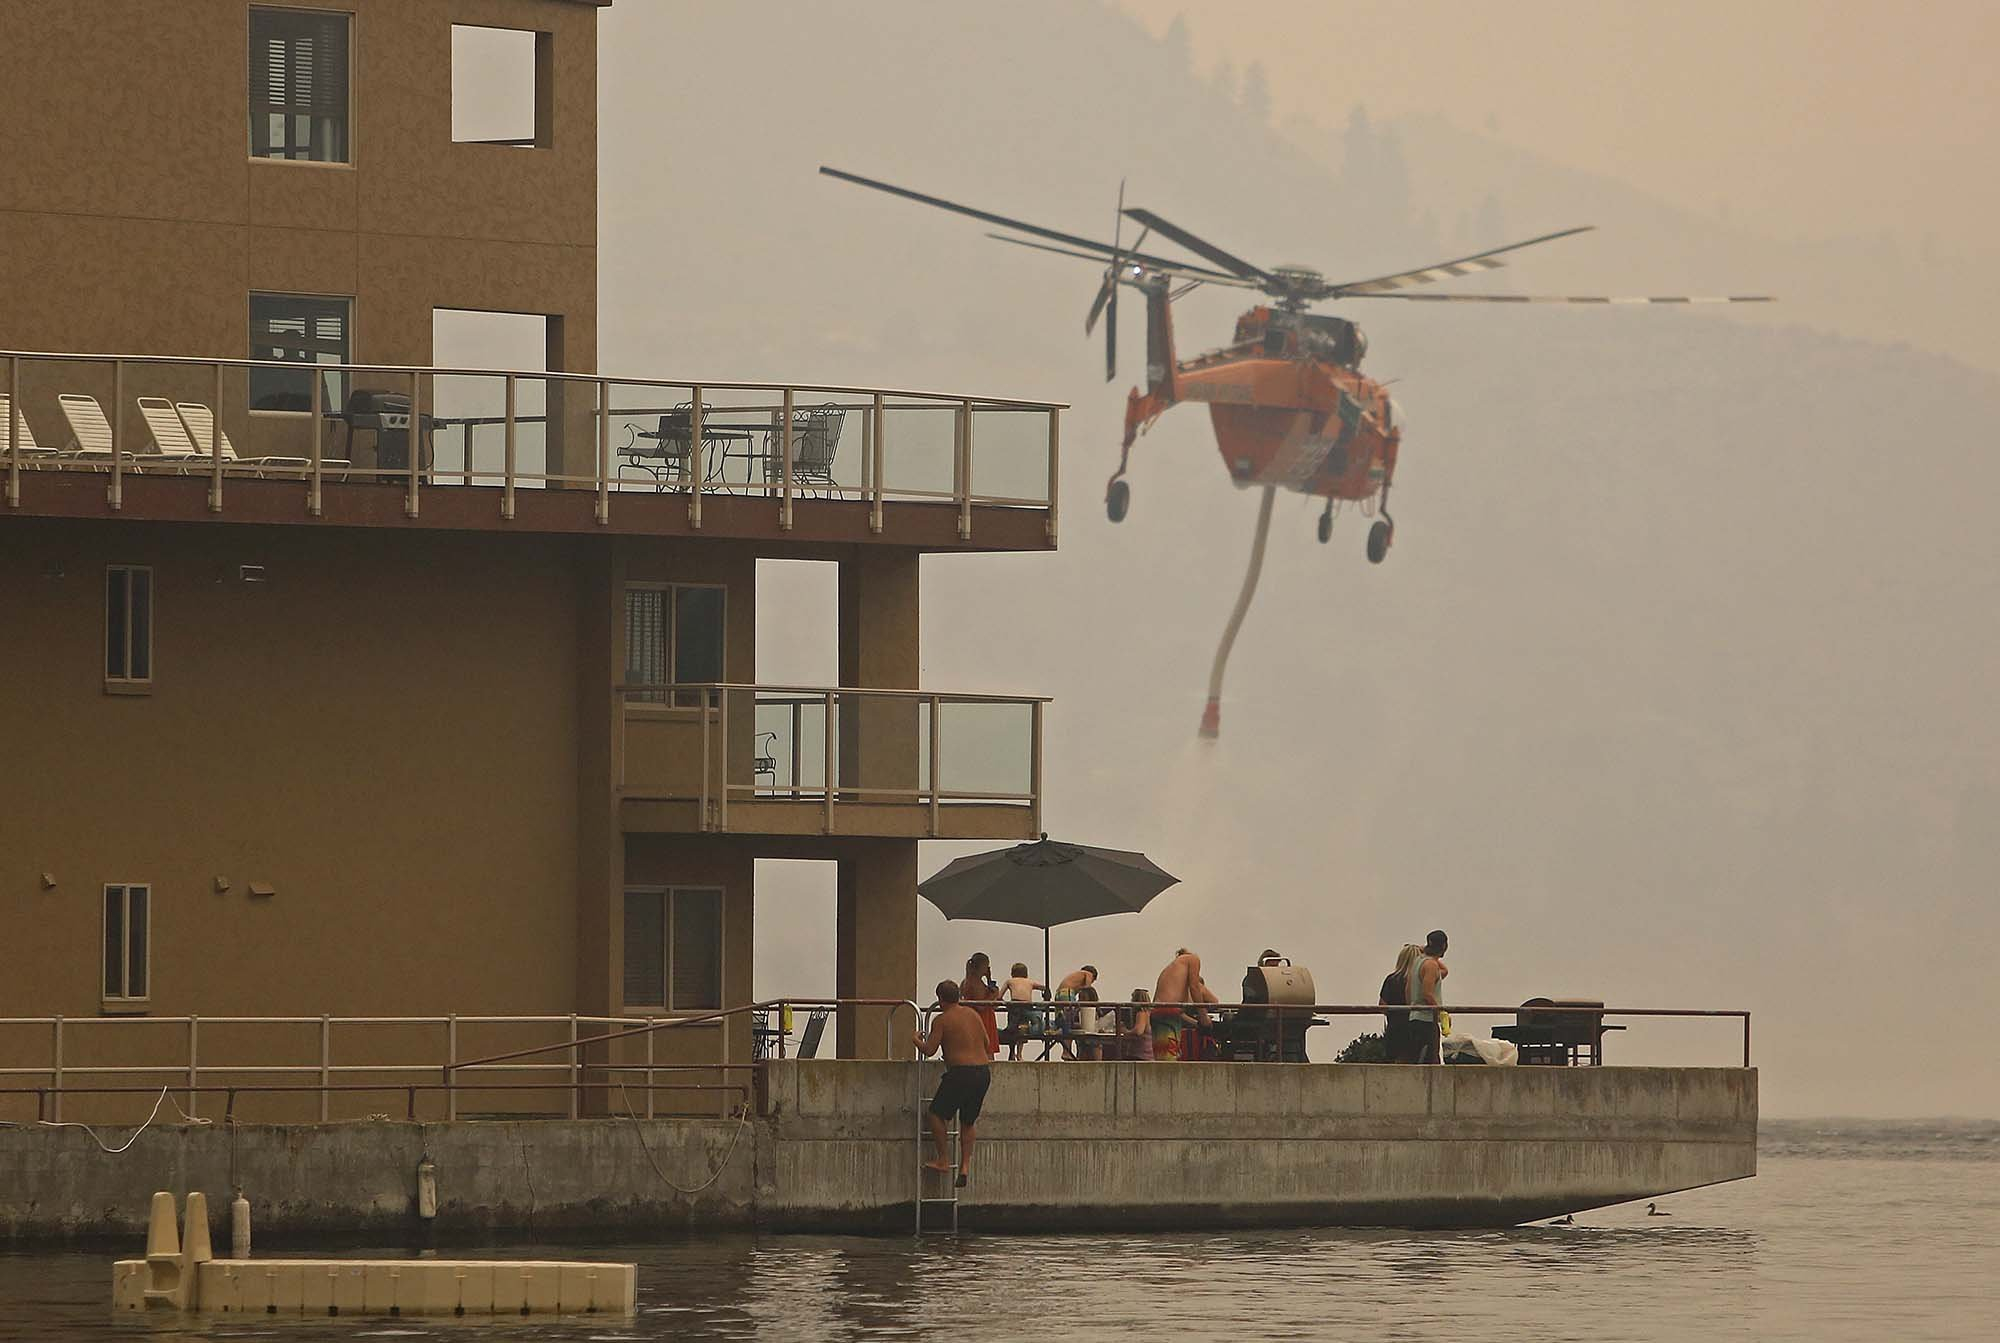 An Erickson Air Crane loads up water on Lake Chelan in as guests at the Grandview On the Lake barbecue, Saturday, Aug. 15, 2015, in Chelan, Wash.